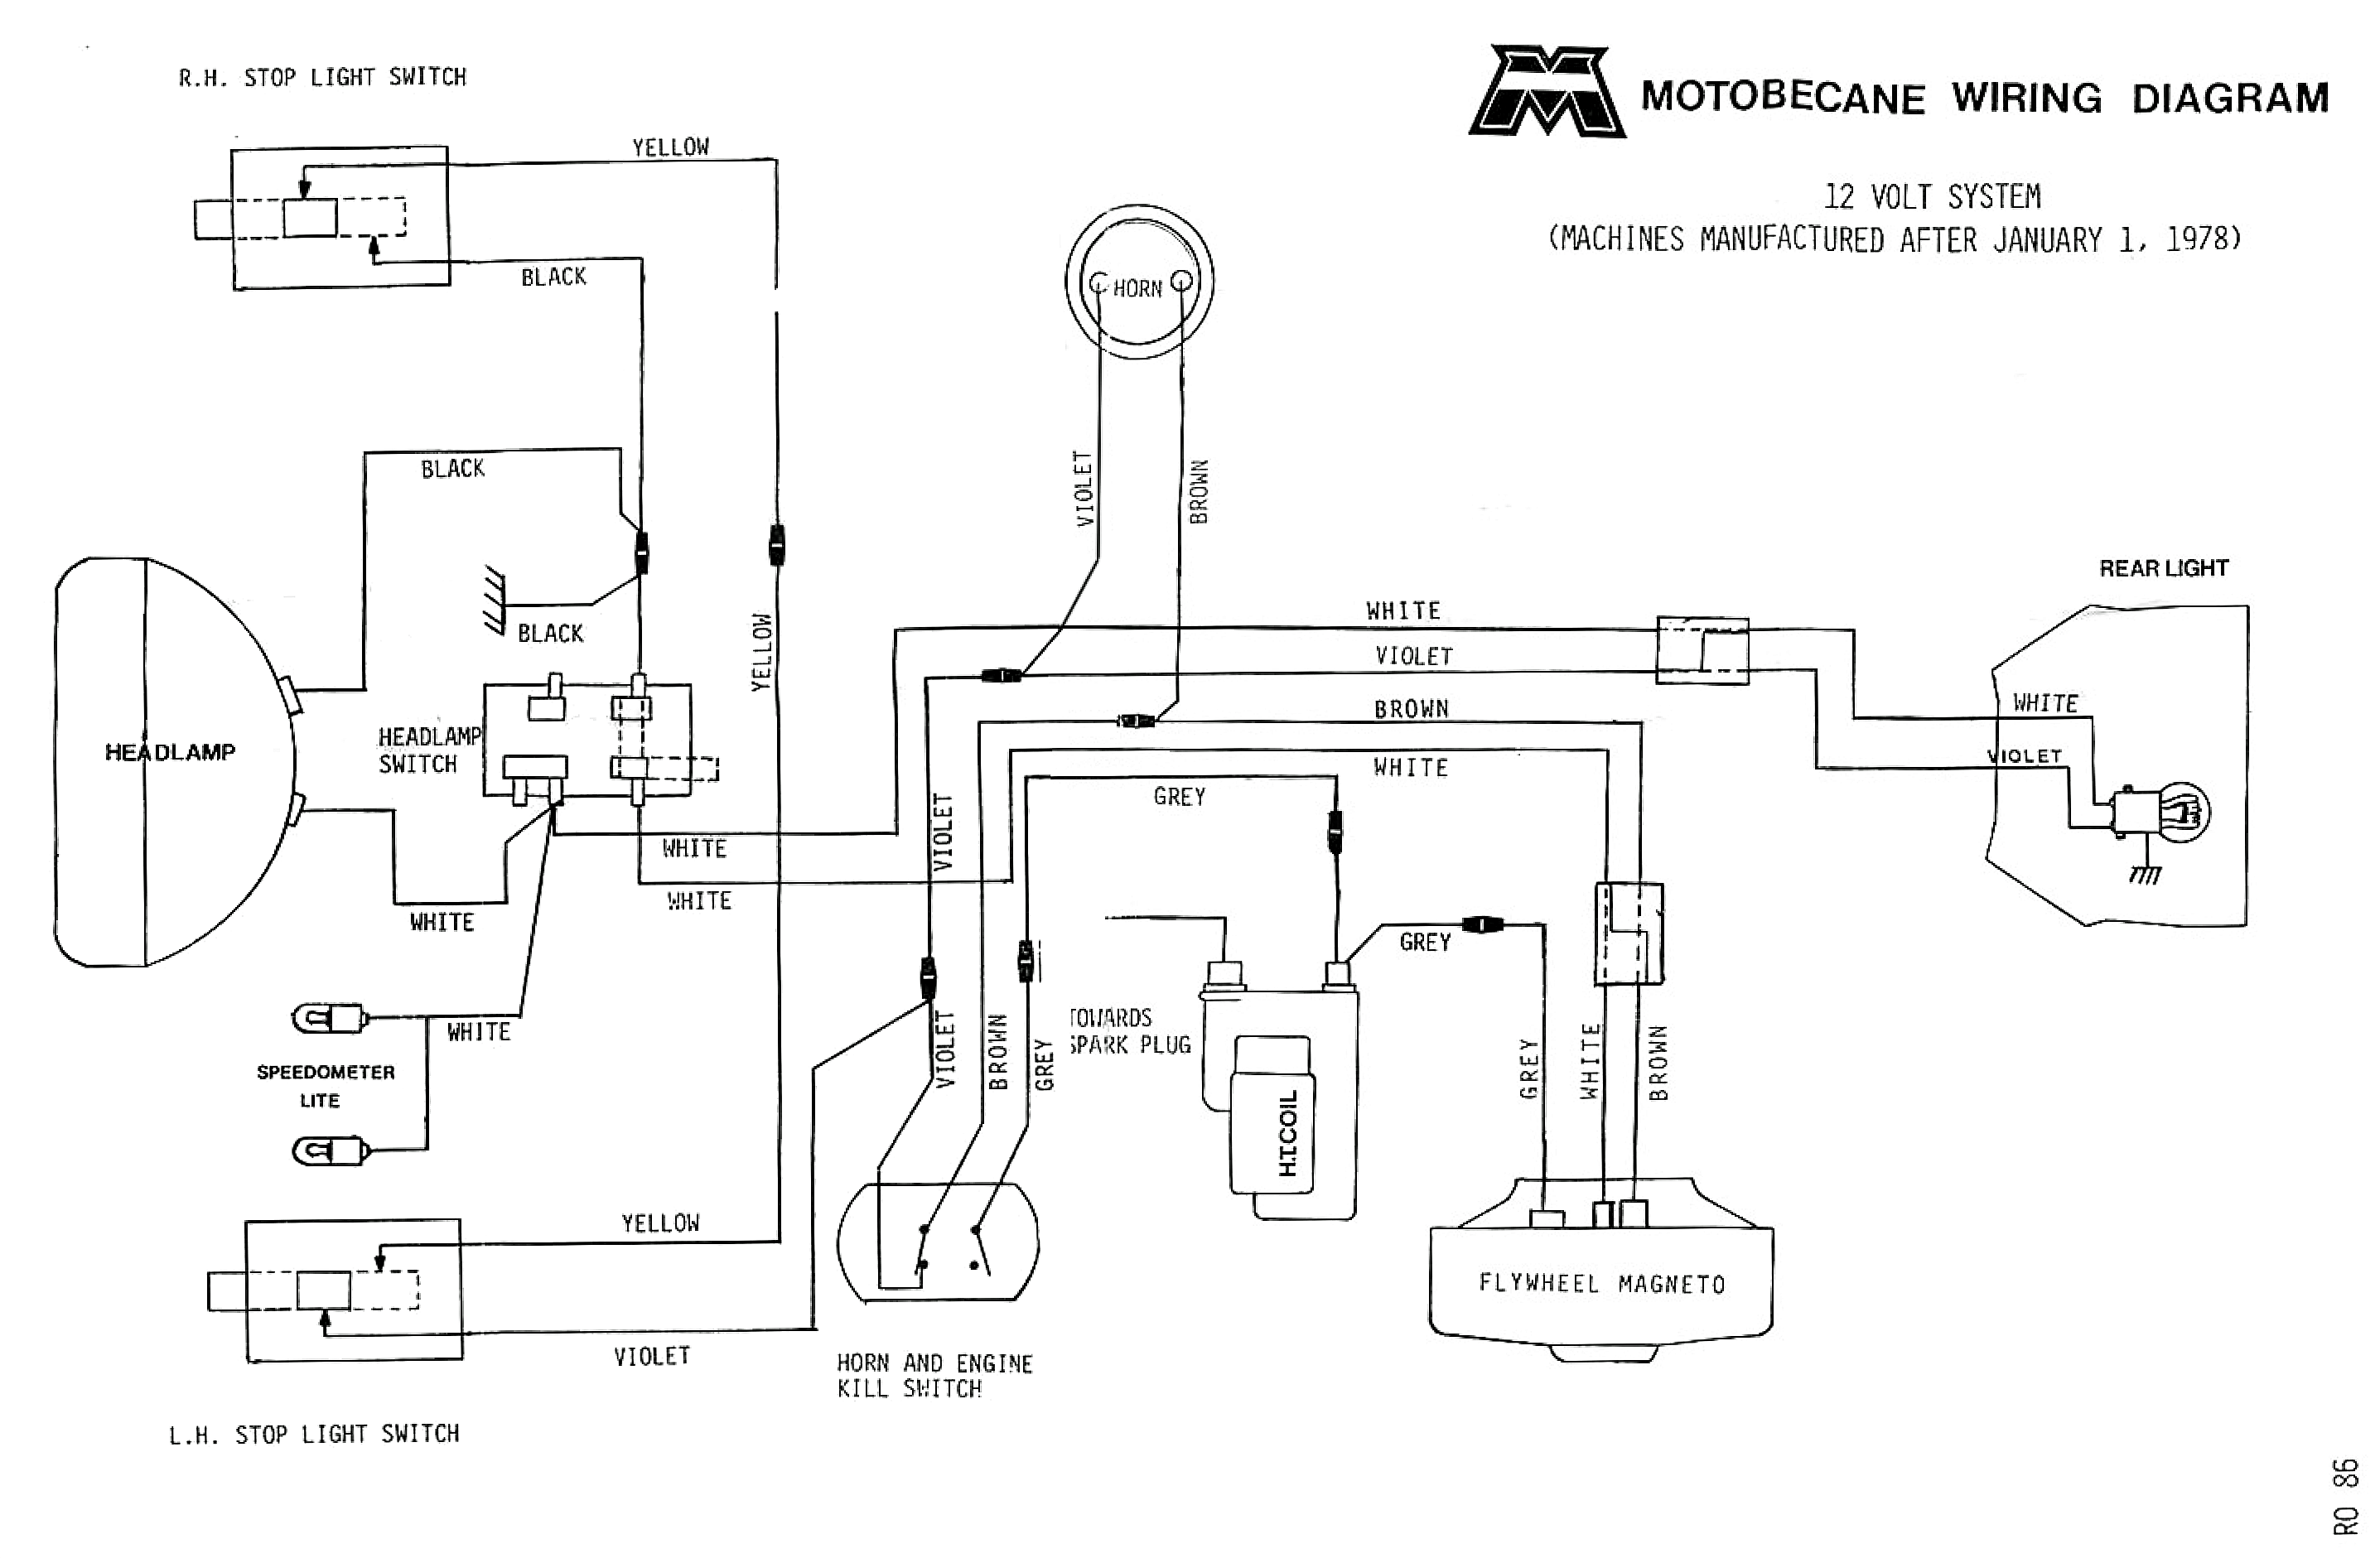 12 Volt Wiring Diagram | Wiring Liry  Volt System Wiring With Altenator Diagram on 12 volt charging system diagram, electronic ignition wiring diagram, 12 volt inverter diagram, 12 volt regulator diagram, battery wiring diagram, diesel tractor wiring diagram, diesel ignition switch wiring diagram, stove wiring diagram, motion light wiring diagram, cobra 75 wx st wiring diagram, inverter wiring diagram, generator wiring diagram, kwikee steps wiring diagram, basic tractor wiring diagram, tv wiring diagram, shore power wiring diagram, volt meter wiring diagram, 12 volt battery wiring, cd player wiring diagram, tractor ignition switch wiring diagram,